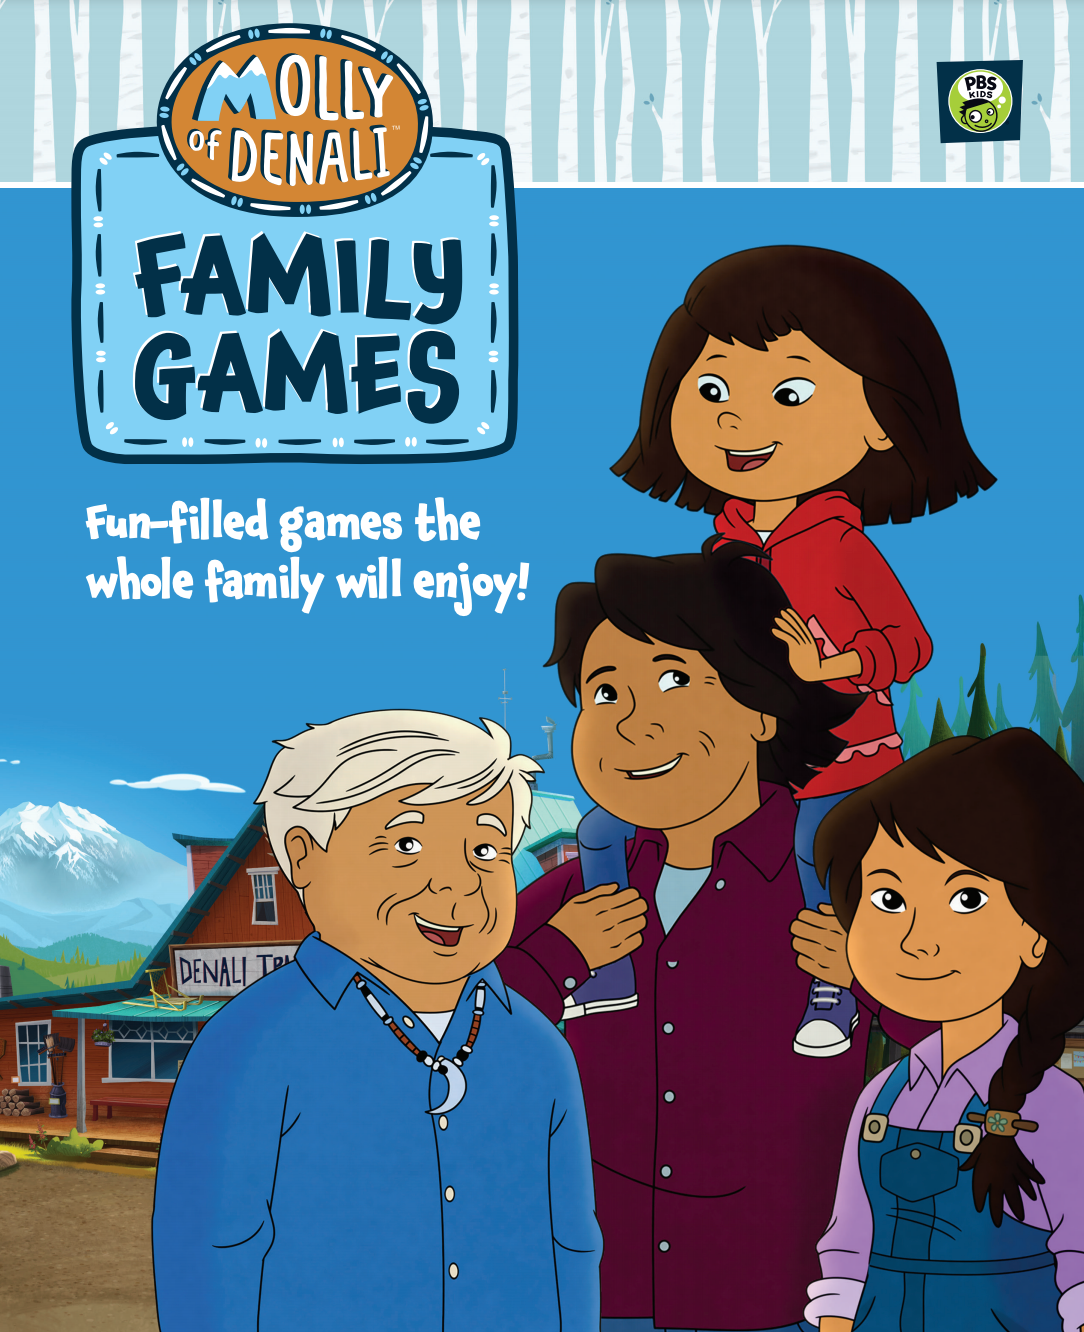 Click here to view and download the Molly of Denali Family Games Guide